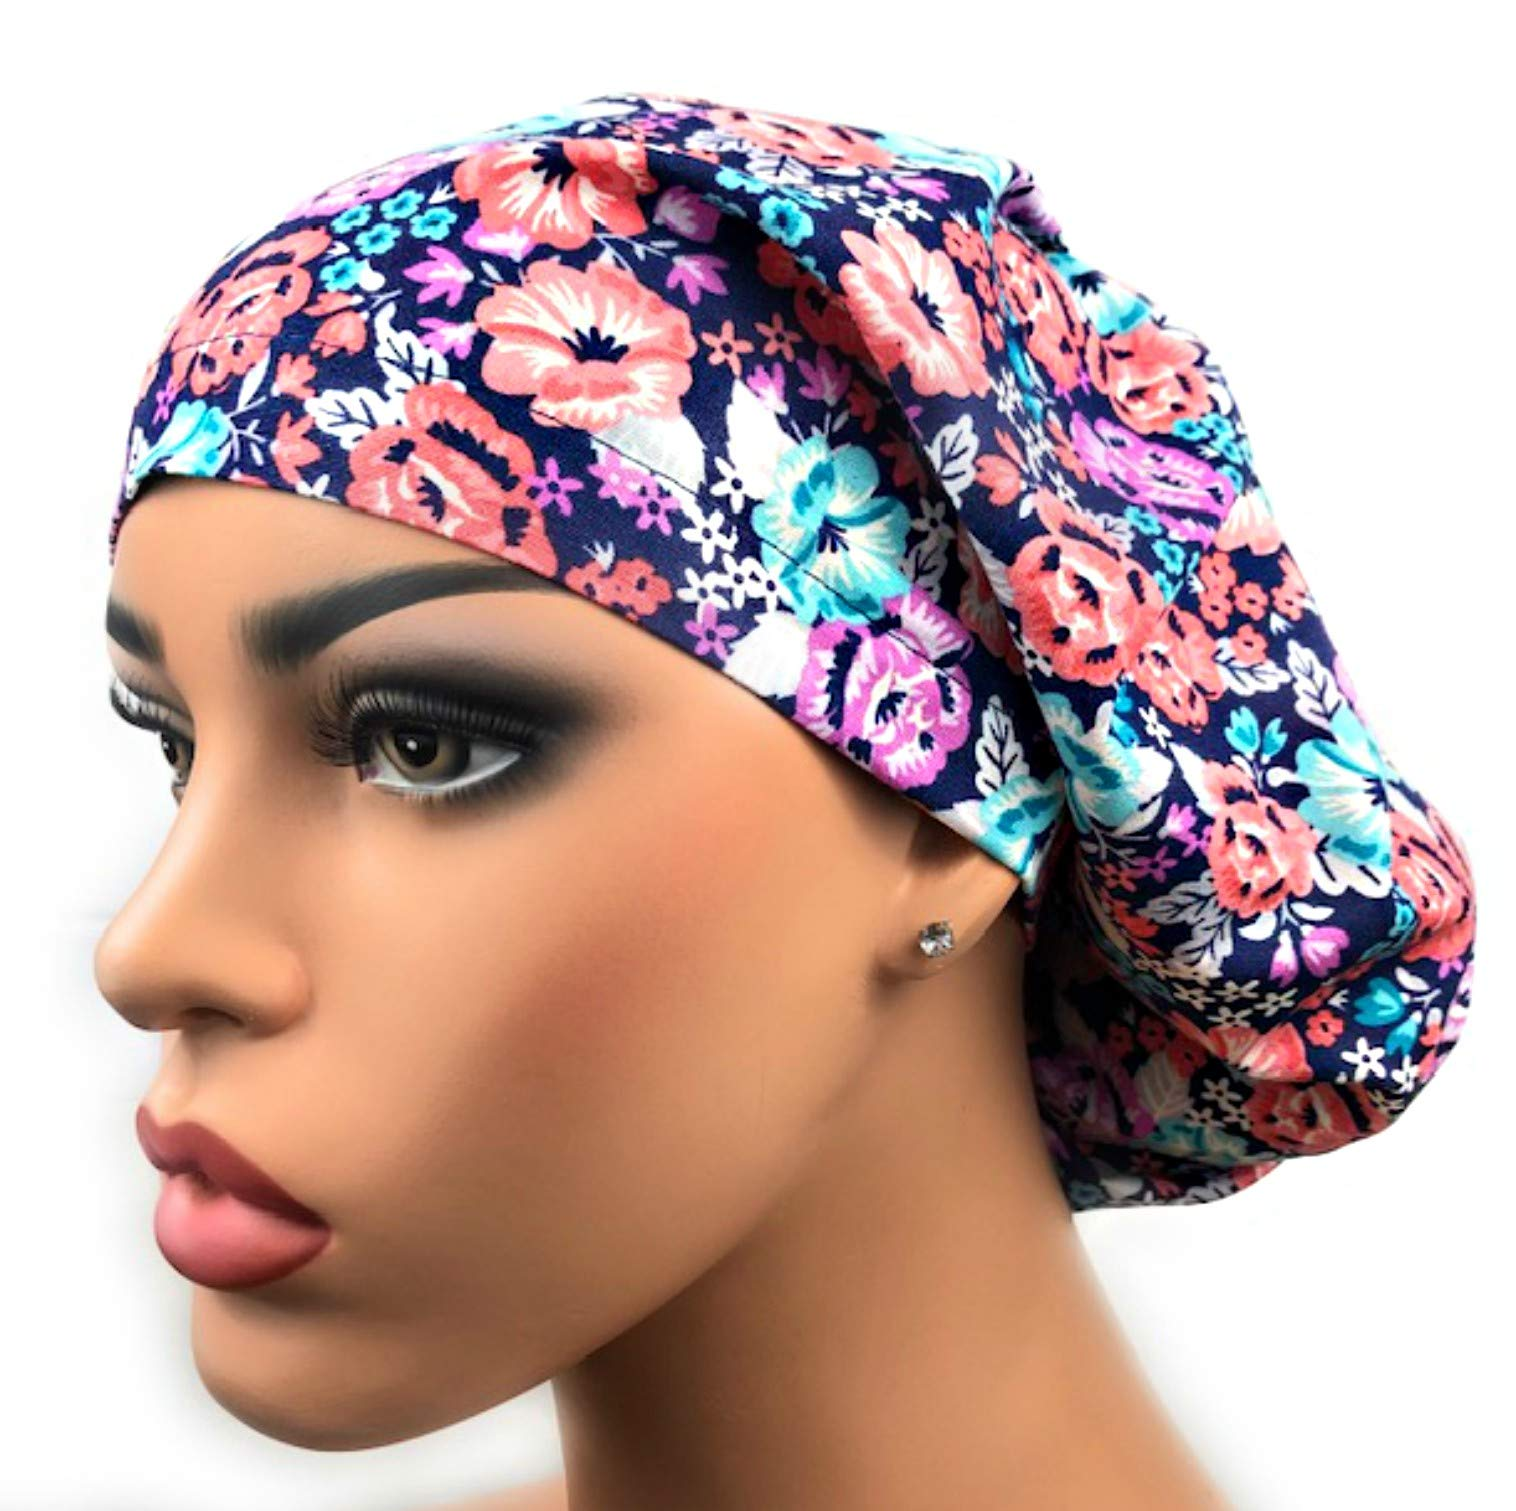 Womens Surgical Scrub Hat OR Nurse Cap Euro Style Blue Pink Floral Adjustable Bouffant Cap by DK Scrub Hats